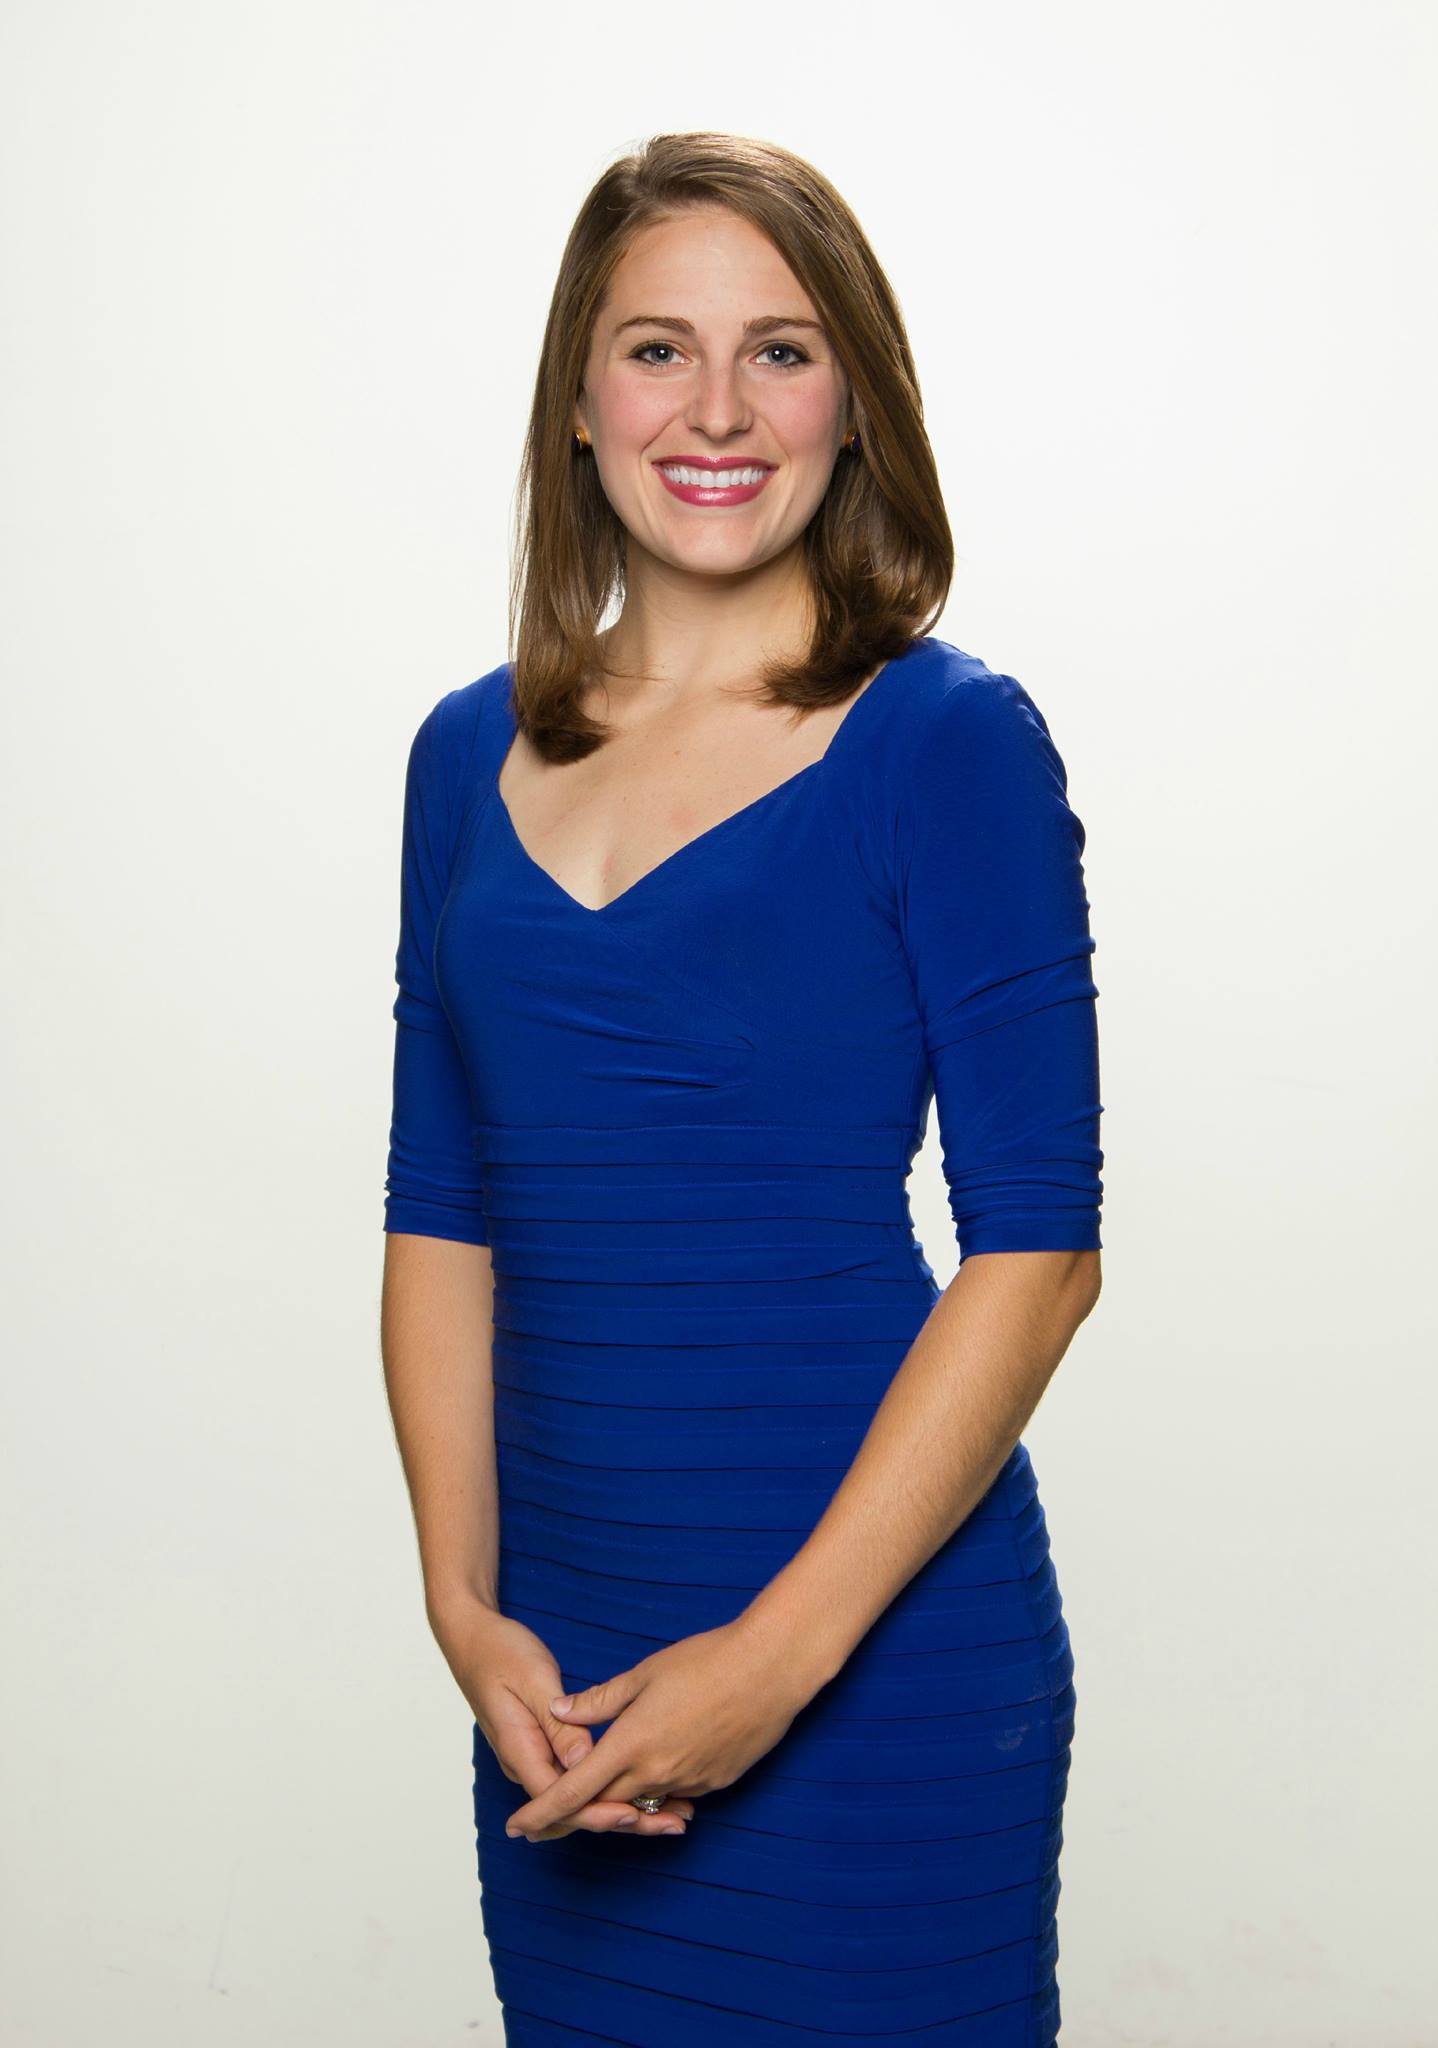 Sarah.Krueger | TV Reporter/Multimedia Journalist